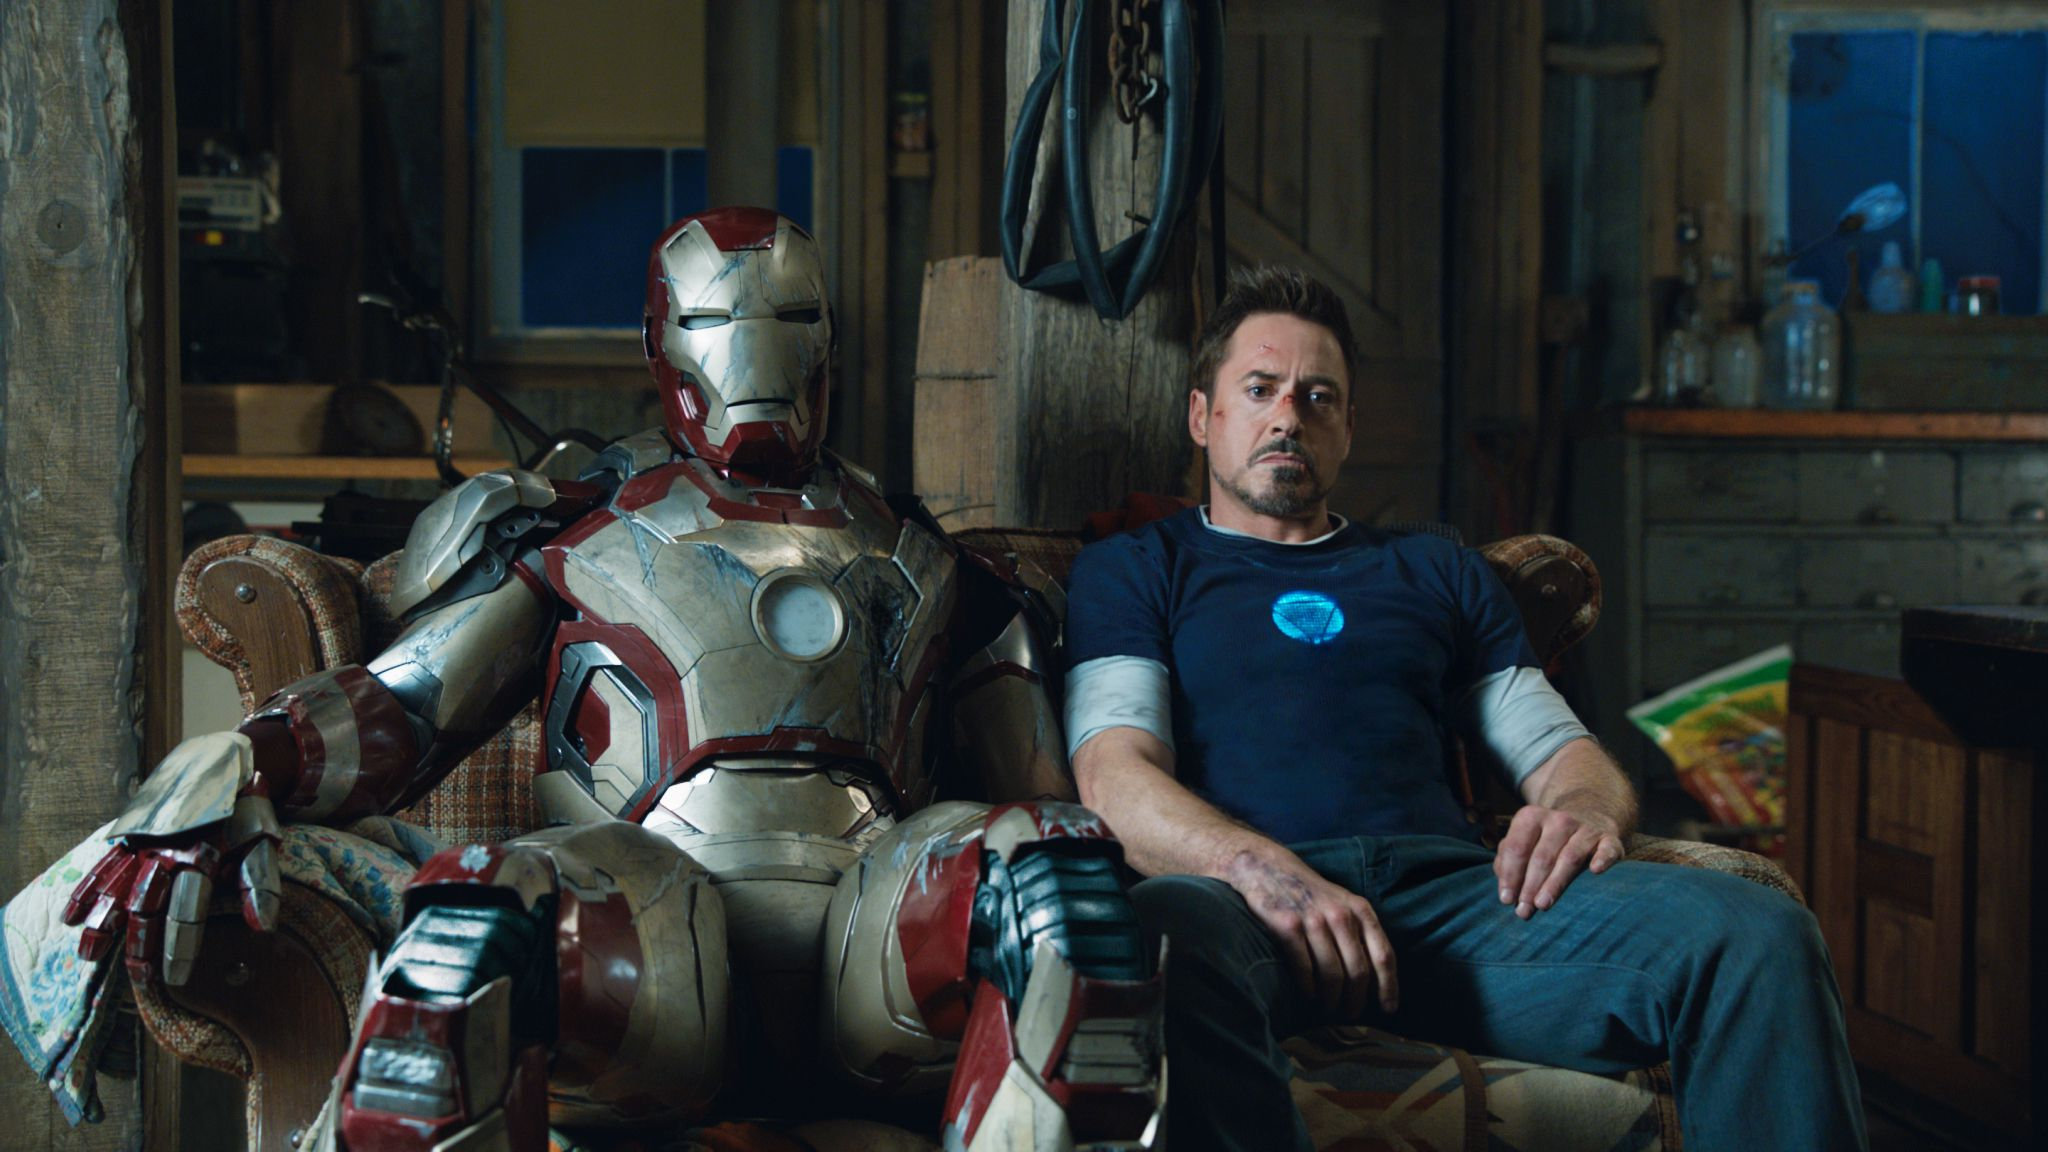 An image from Iron Man 3